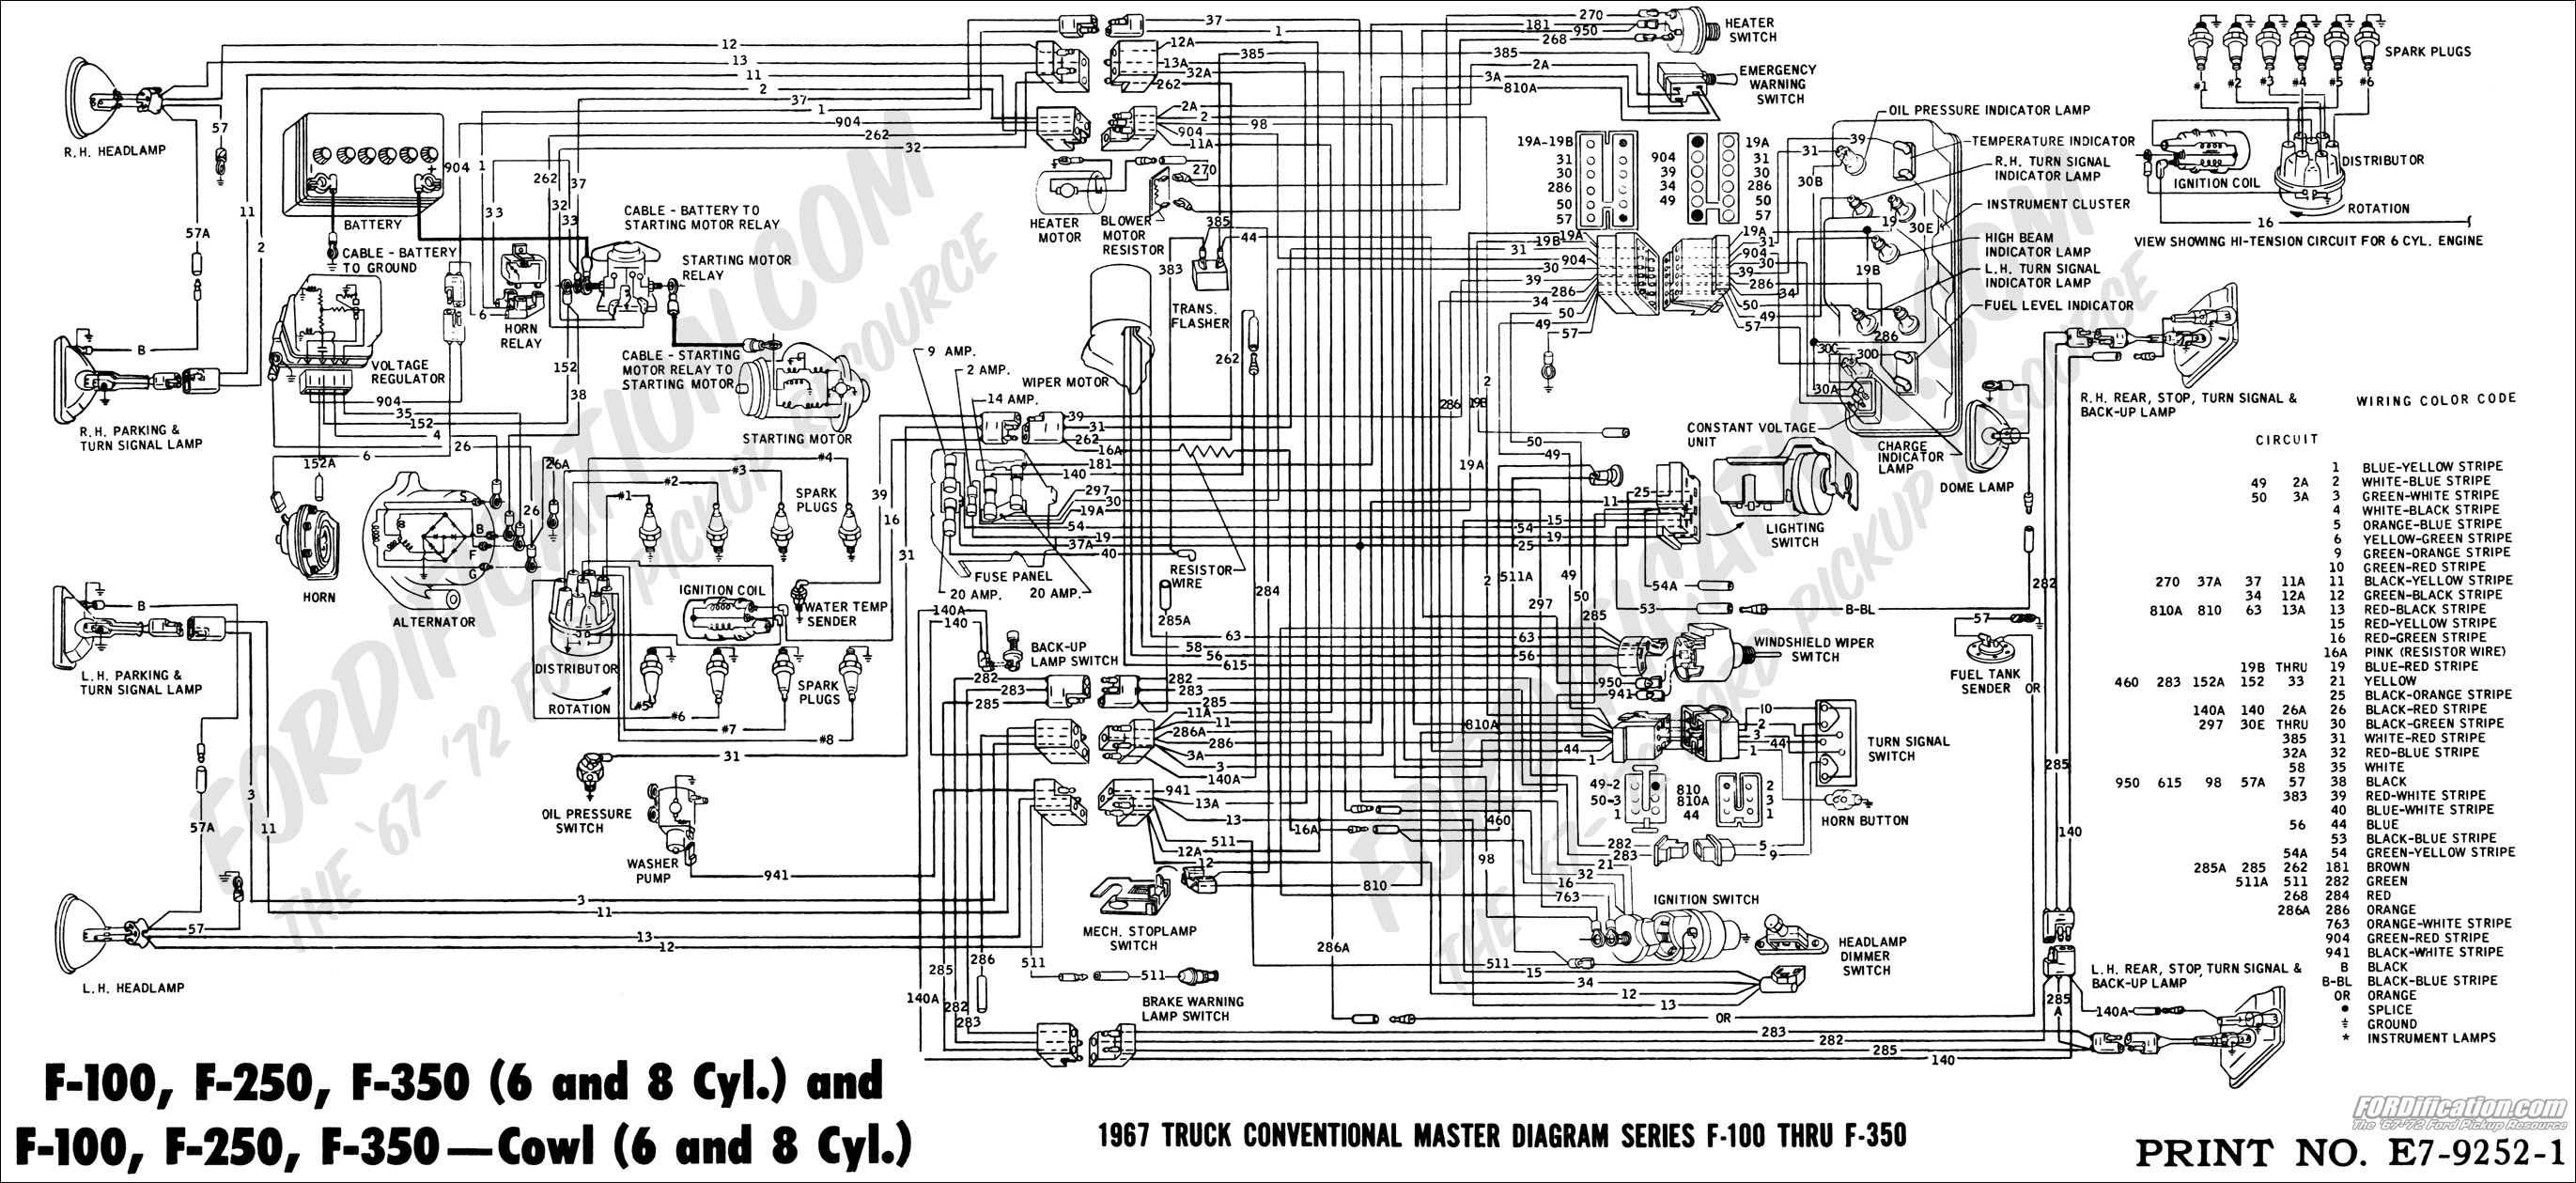 1989 ford f600 wiring diagram wiring diagrams schema